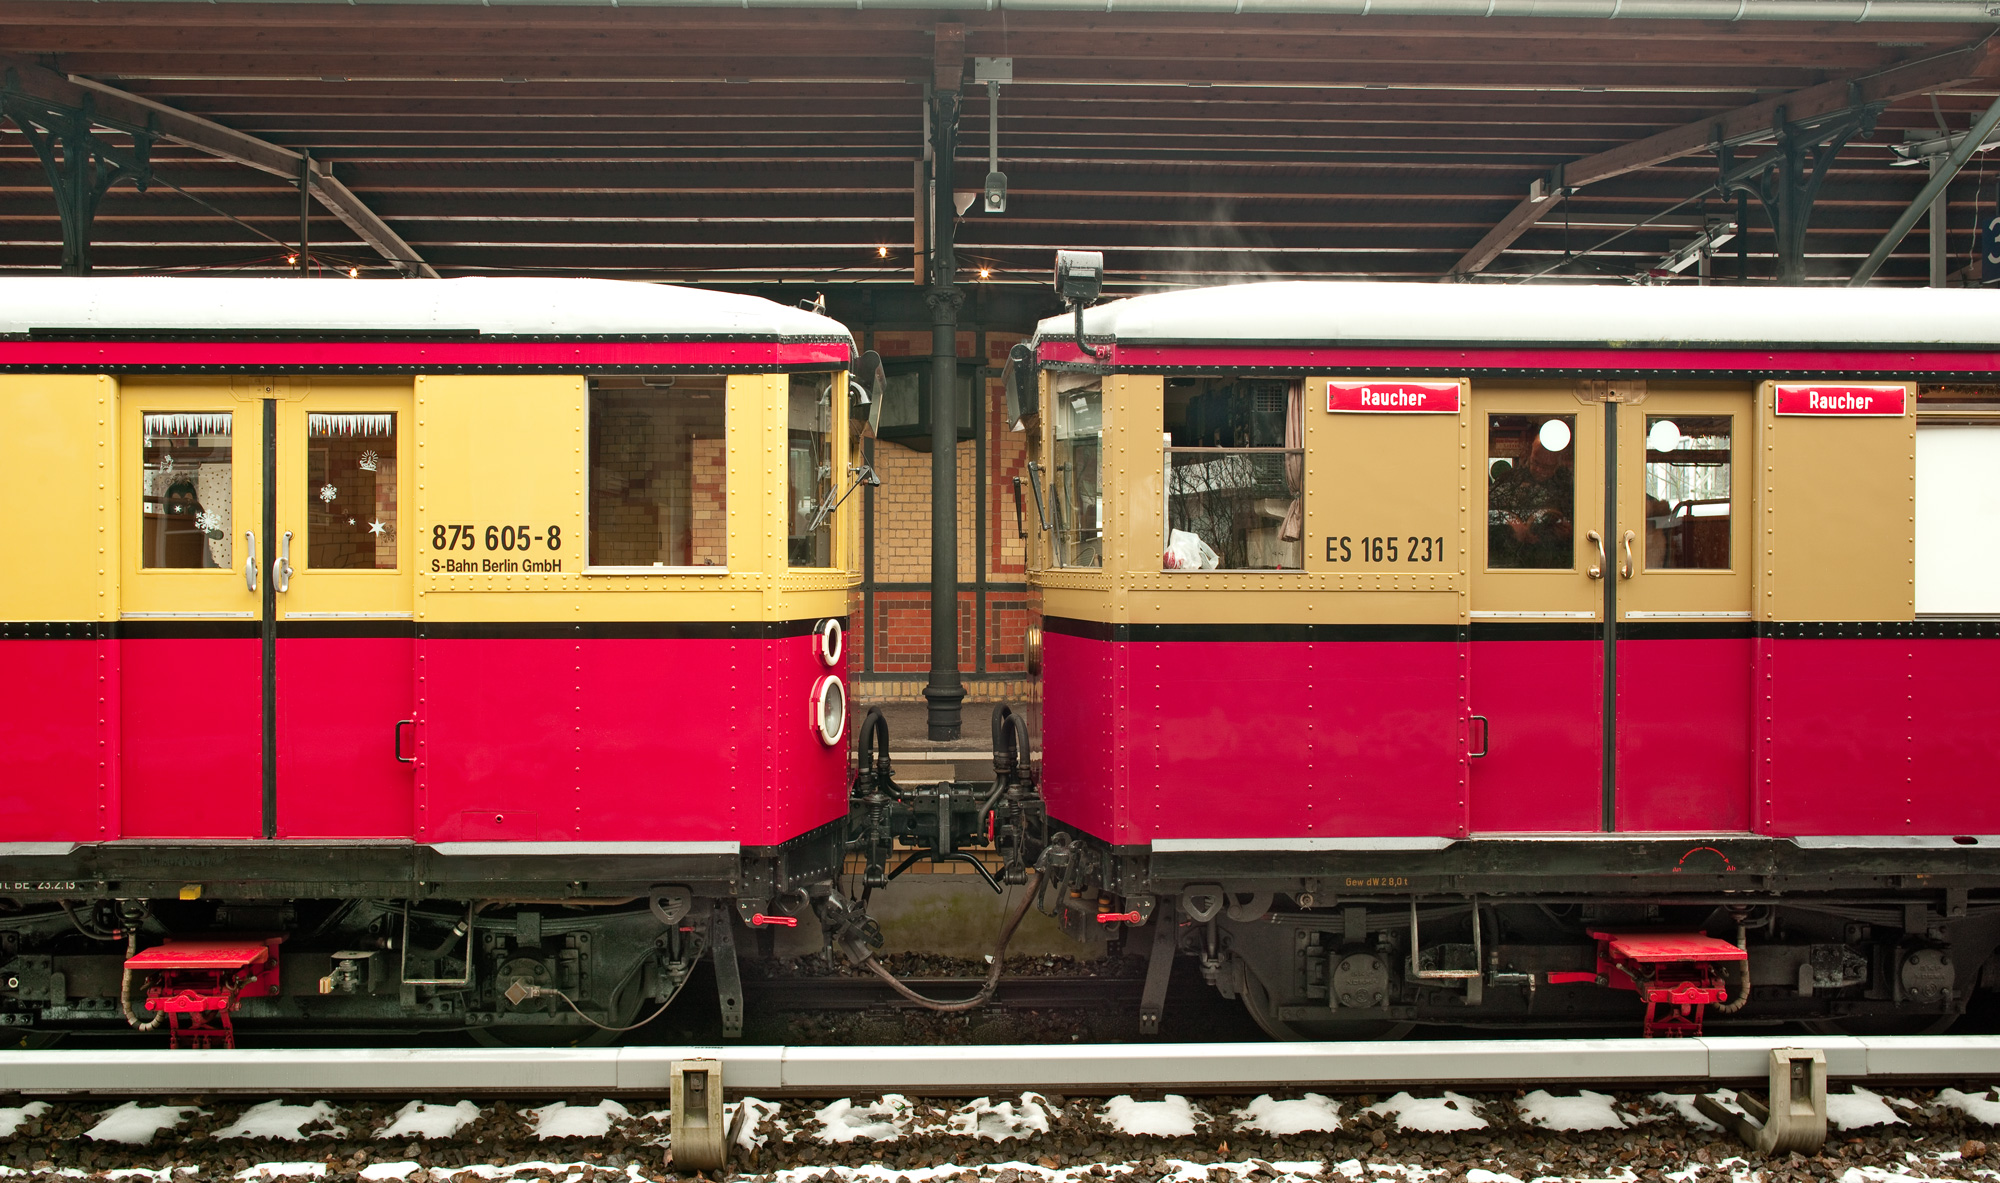 """retired"" S-bahn In Berlin by Rudiger in Regular Member Gallery"